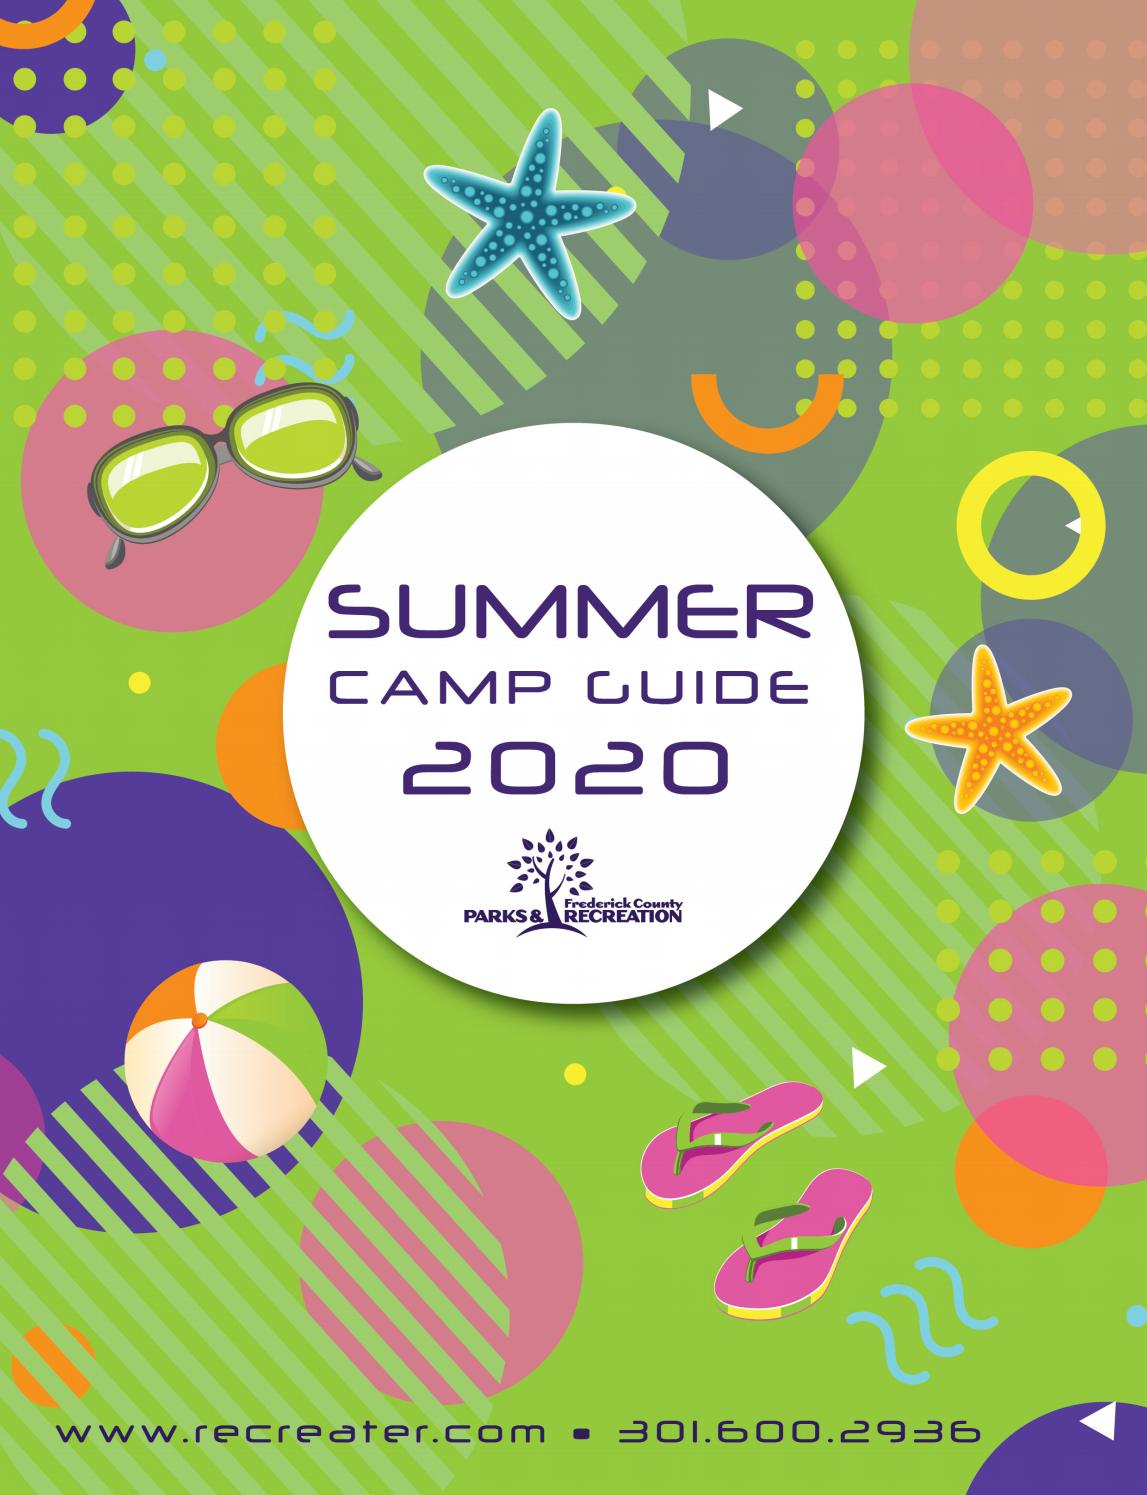 Roblox Parkour Custom Glove Summer Camp Guide 2020 By Frederick County Parks And Recreation Issuu